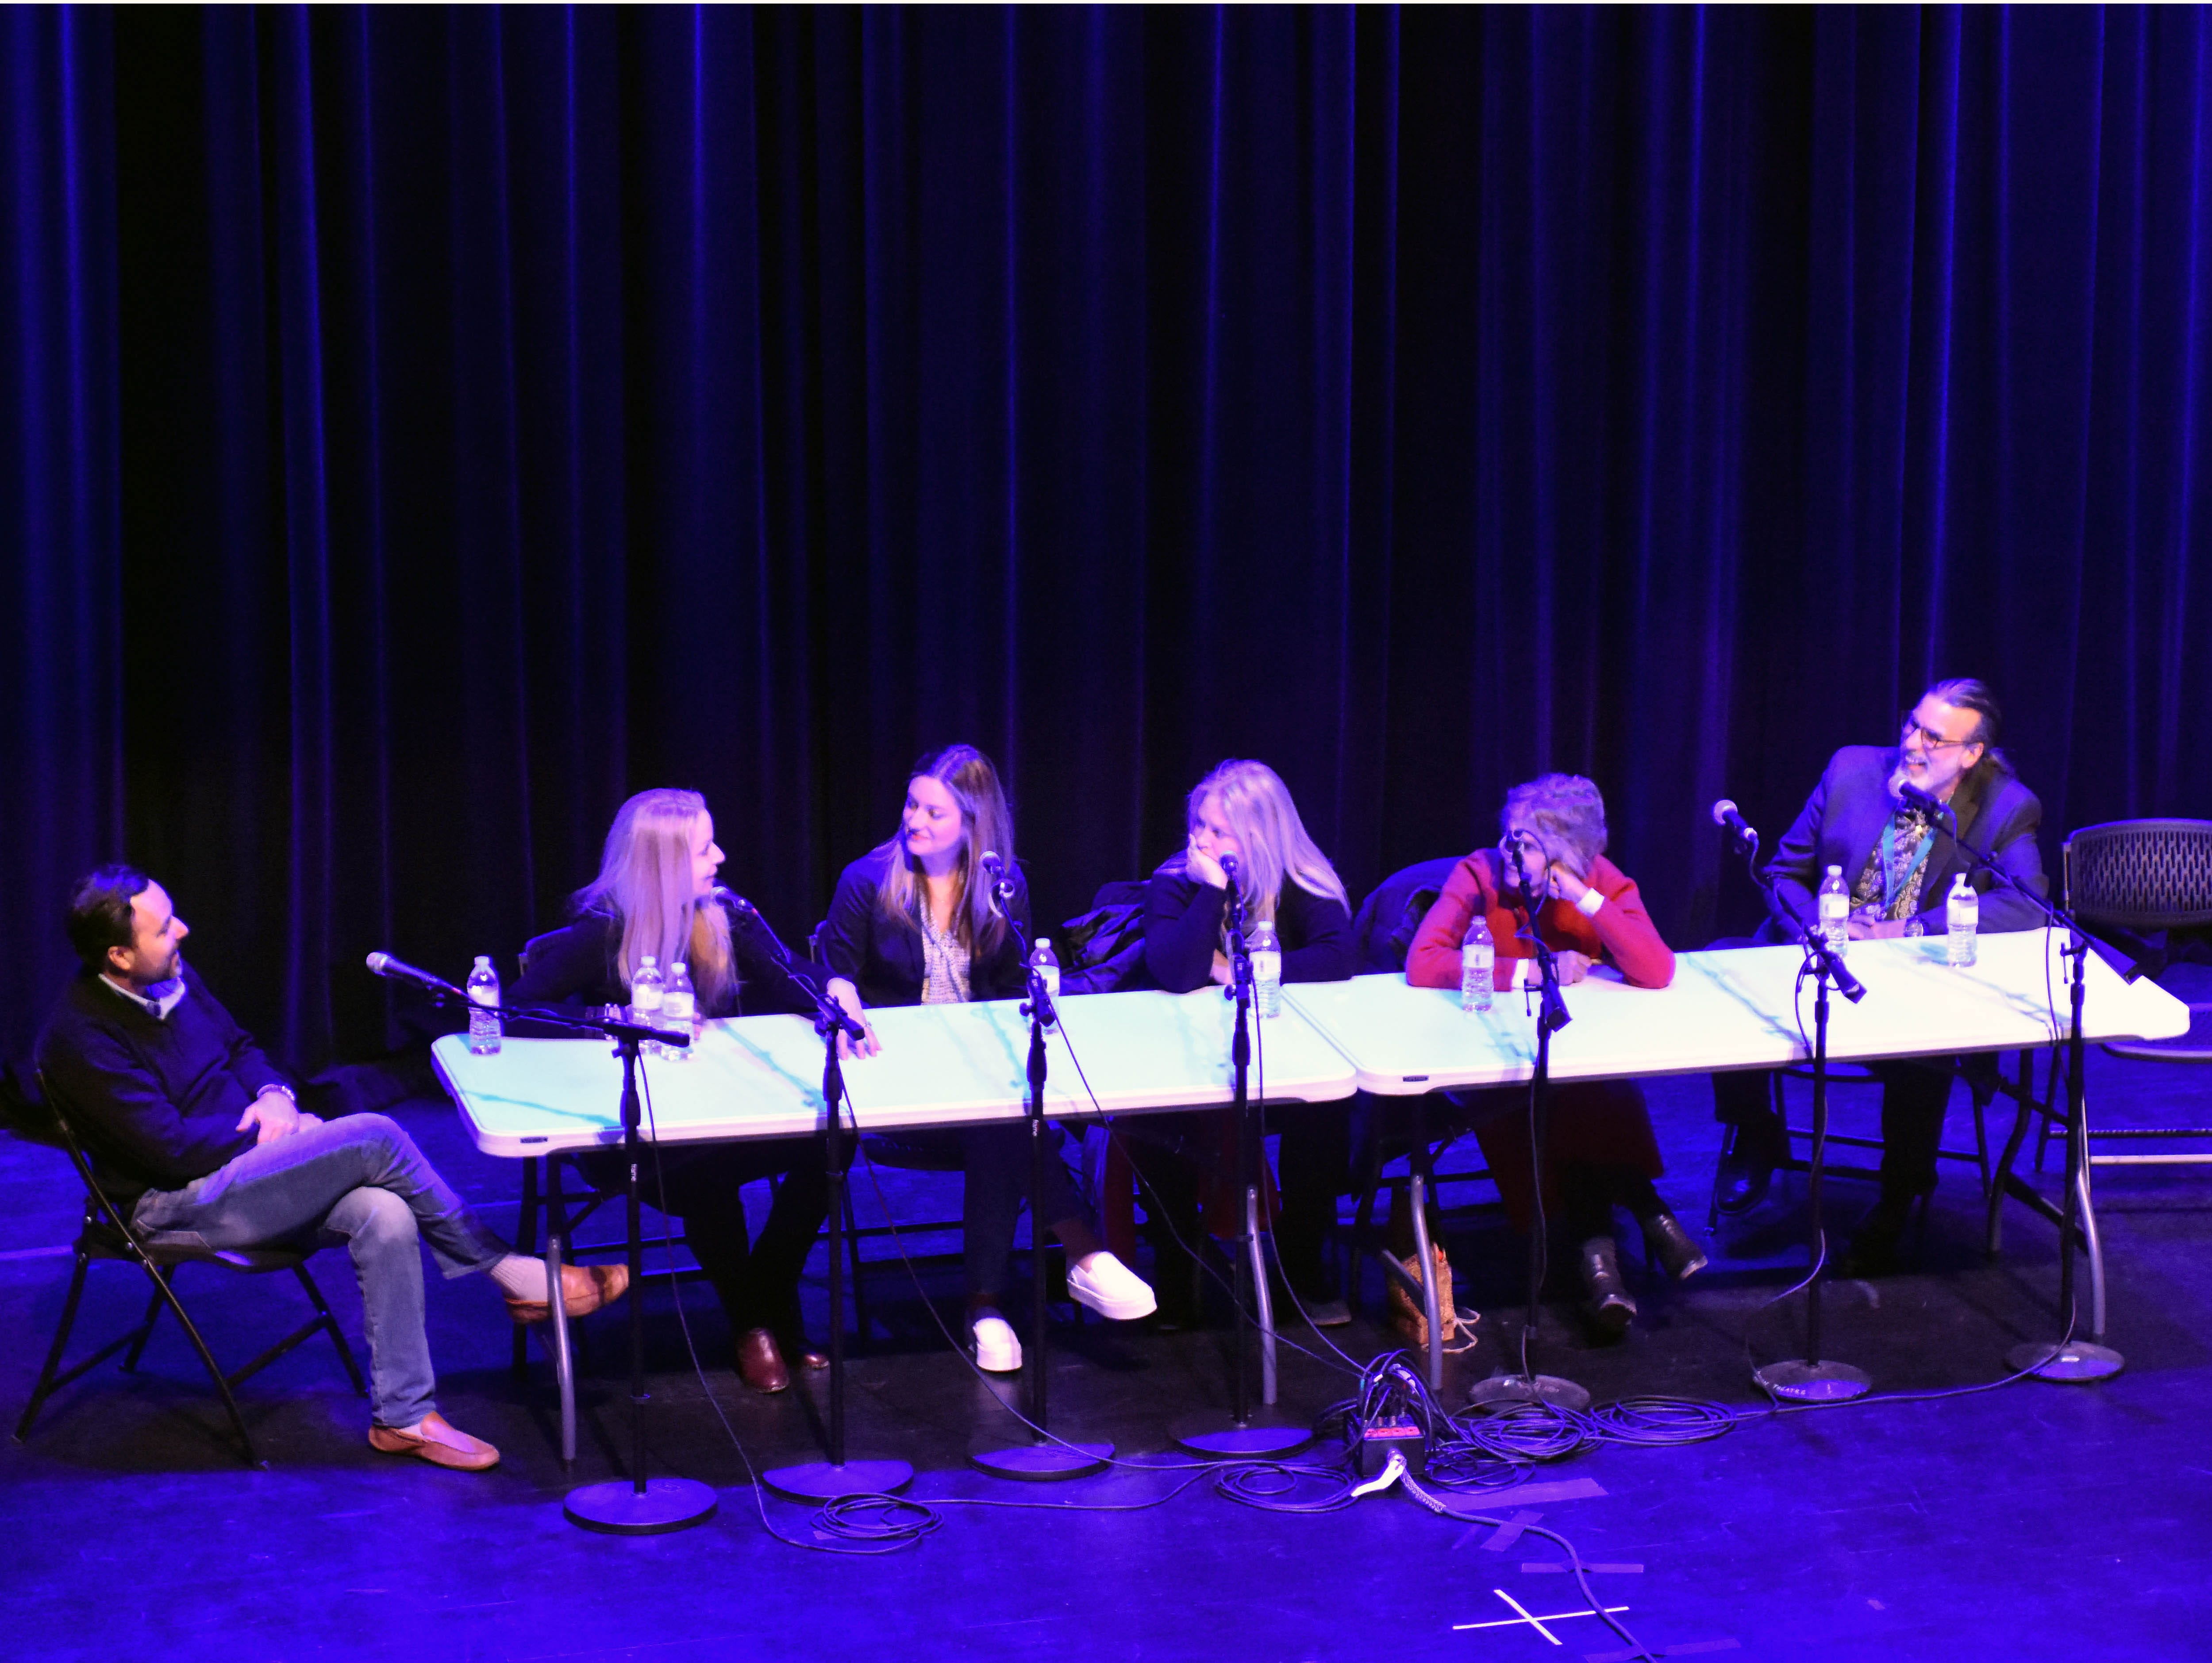 """From left, director Ross Marks (""""Walking with Herb""""), costume designer Mary T. Quigley (""""The Big Bang Theory,"""" """"Roseanne""""), actress Zoe Perry (""""Young Sheldon""""), actress Beverly D'Angelo (""""National Lampoon's Vacation"""" movies), actress Lauren Hutton (""""American Gigolo""""); and producer Don Foster """"Big Bang Theory"""") participate in the """"Making It Work in Hollywood"""" panel Saturday, Feb. 23, 2019, at the Rio Grande Theatre, part of the Las Cruces International Film Festival."""